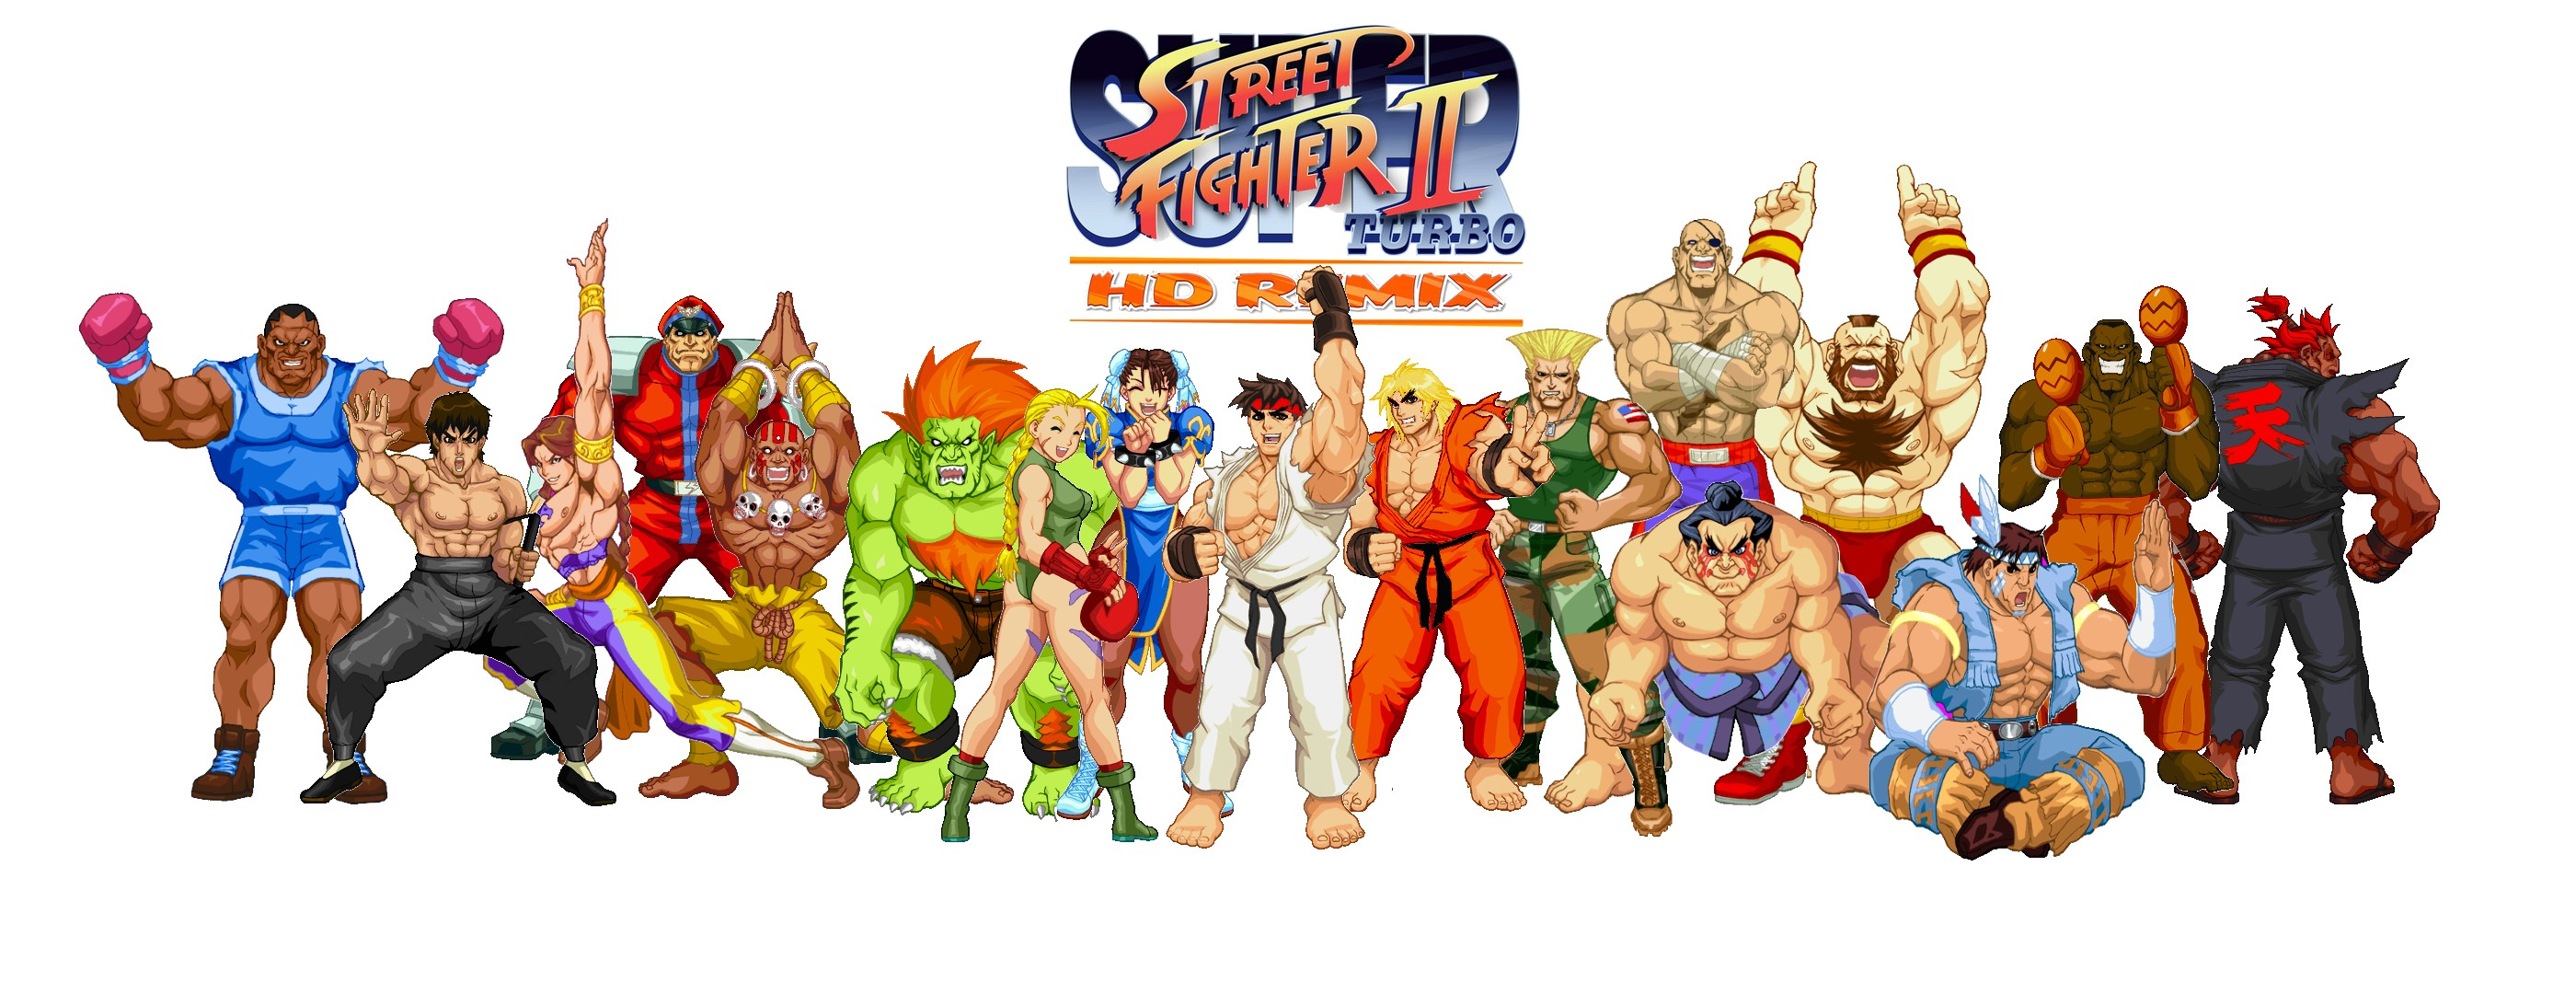 Super street fighter ii turbo hd remix pc system requirements